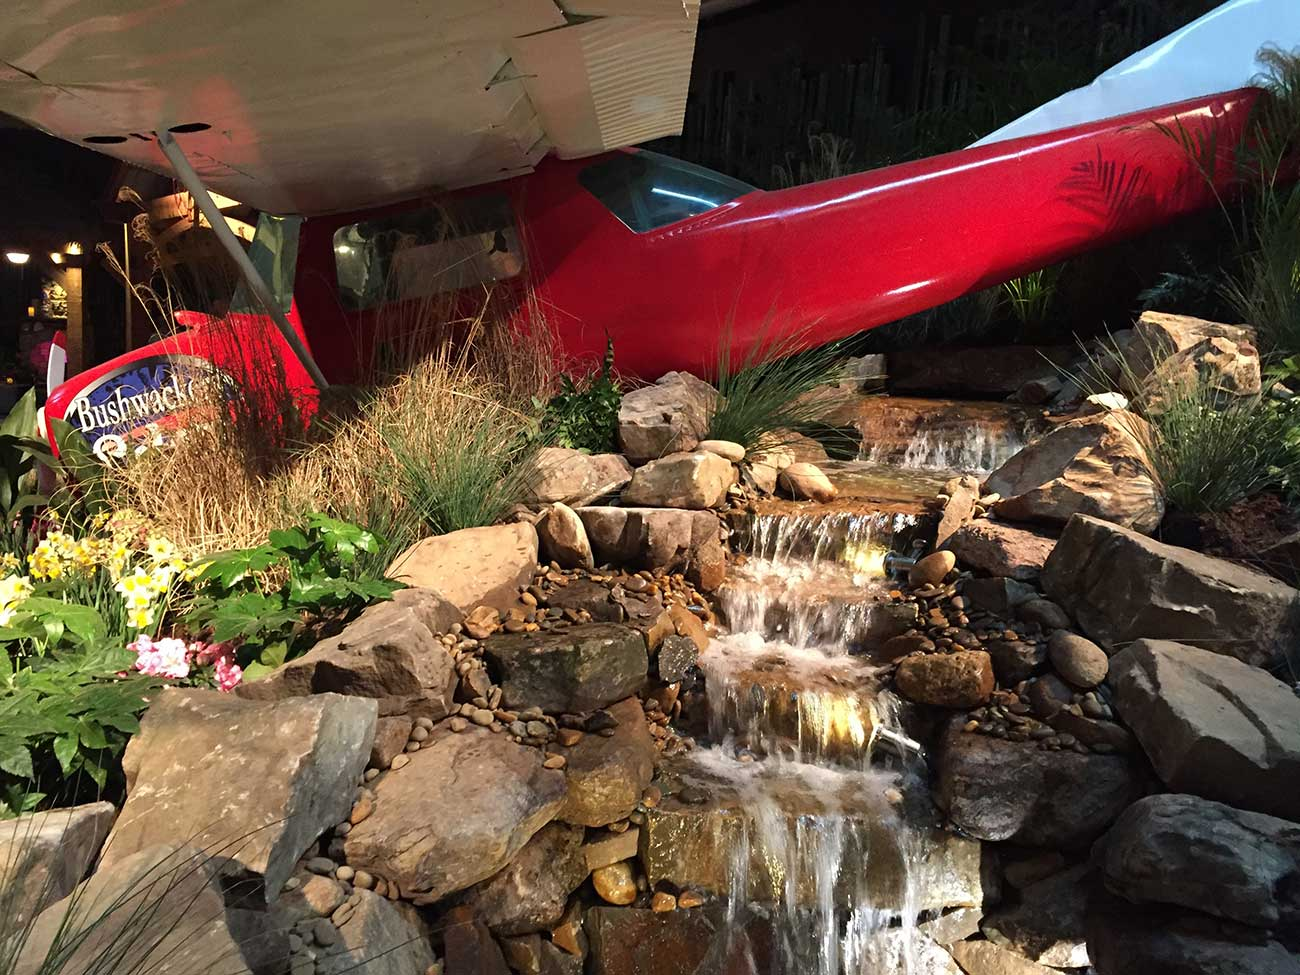 Top landscapers in charlotte nc - Top 6 Awe Inspiring Garden Displays From Local Landscapers On